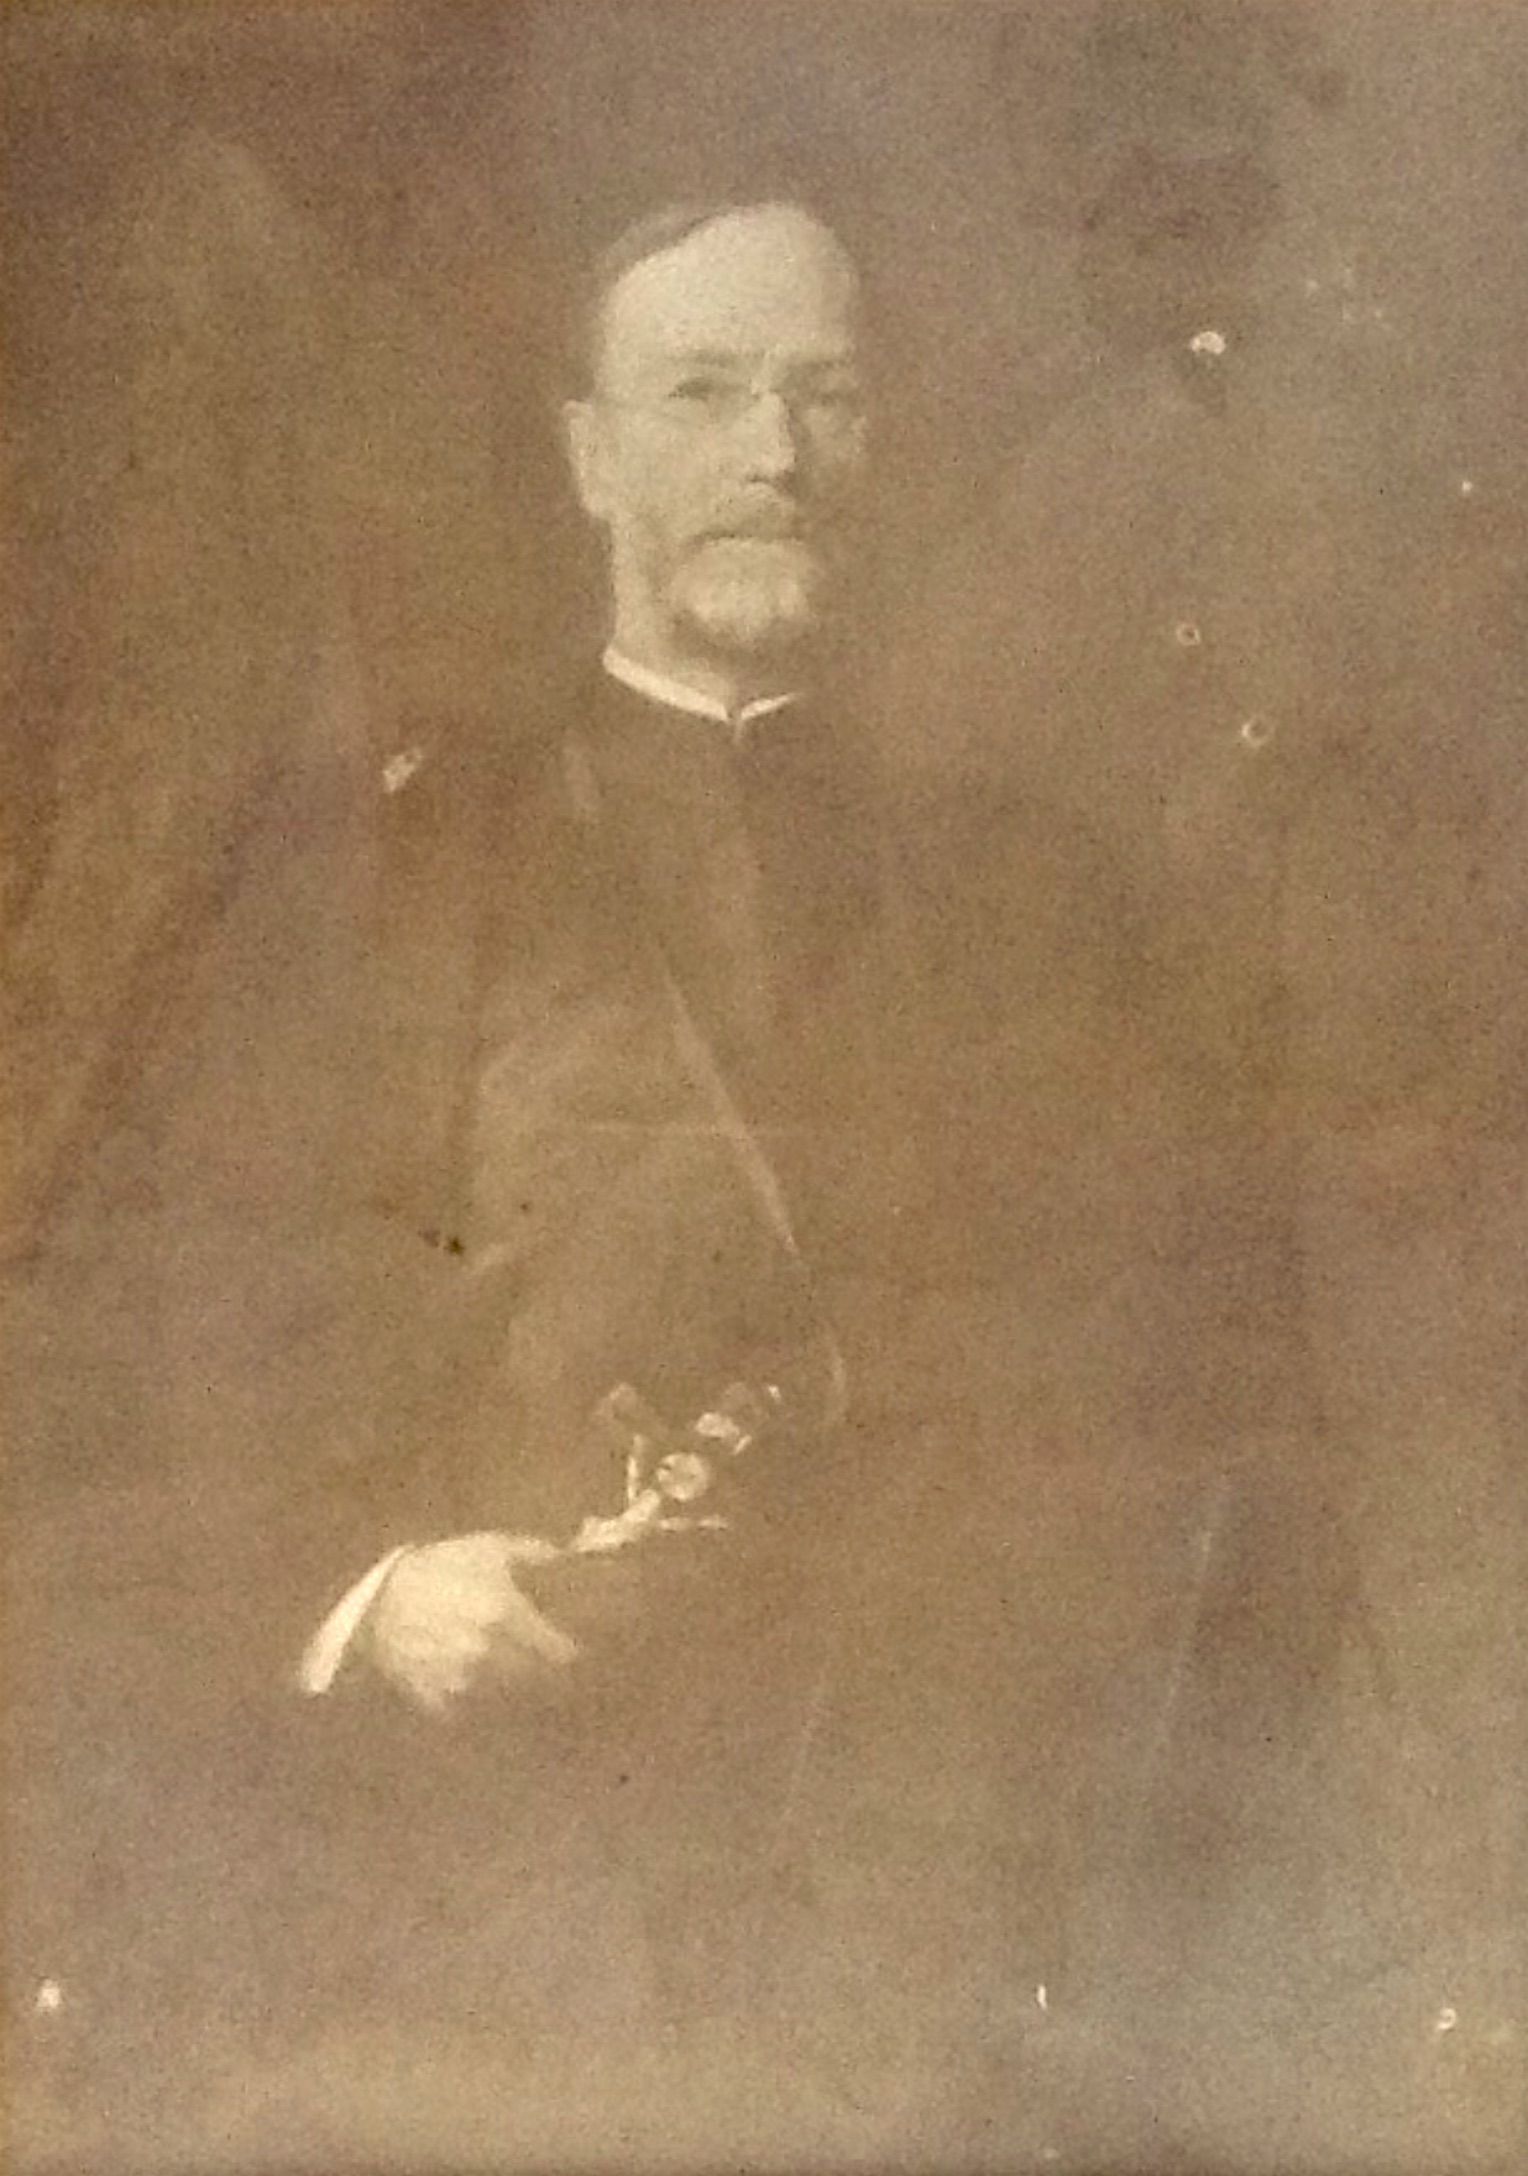 Rev Thomas Ewing Sherman